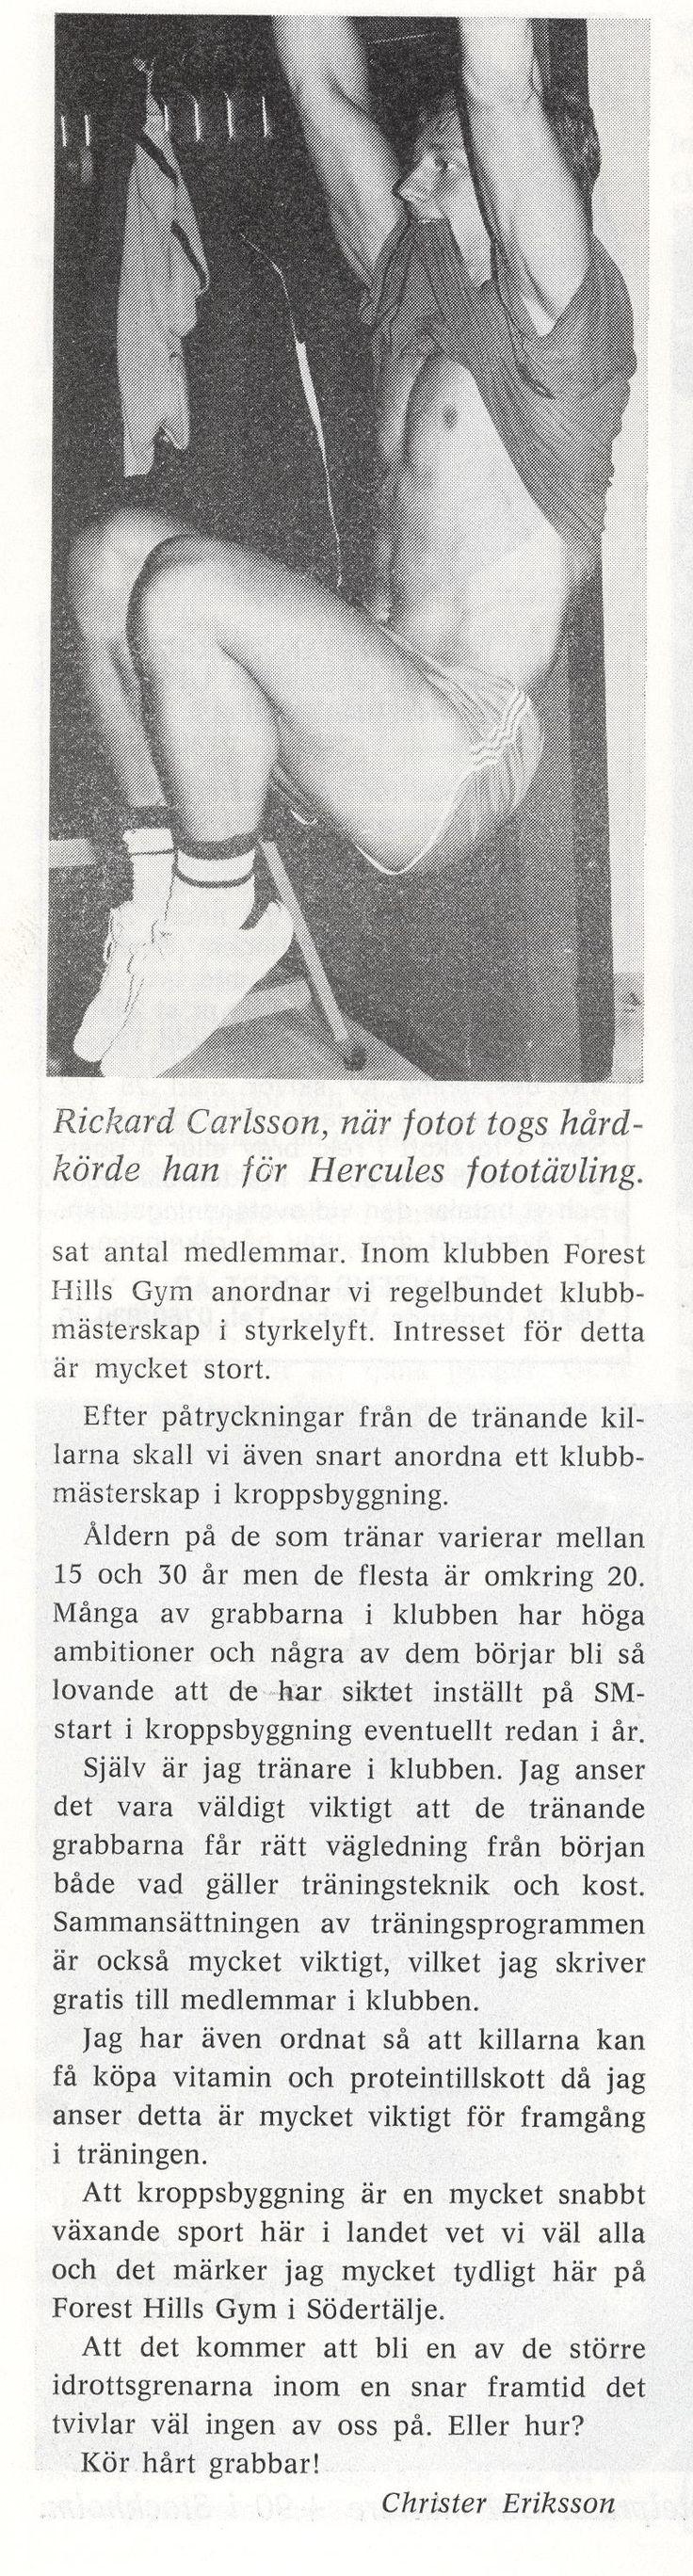 Sweden Skogshöjd - Forest Hills Gym 1979